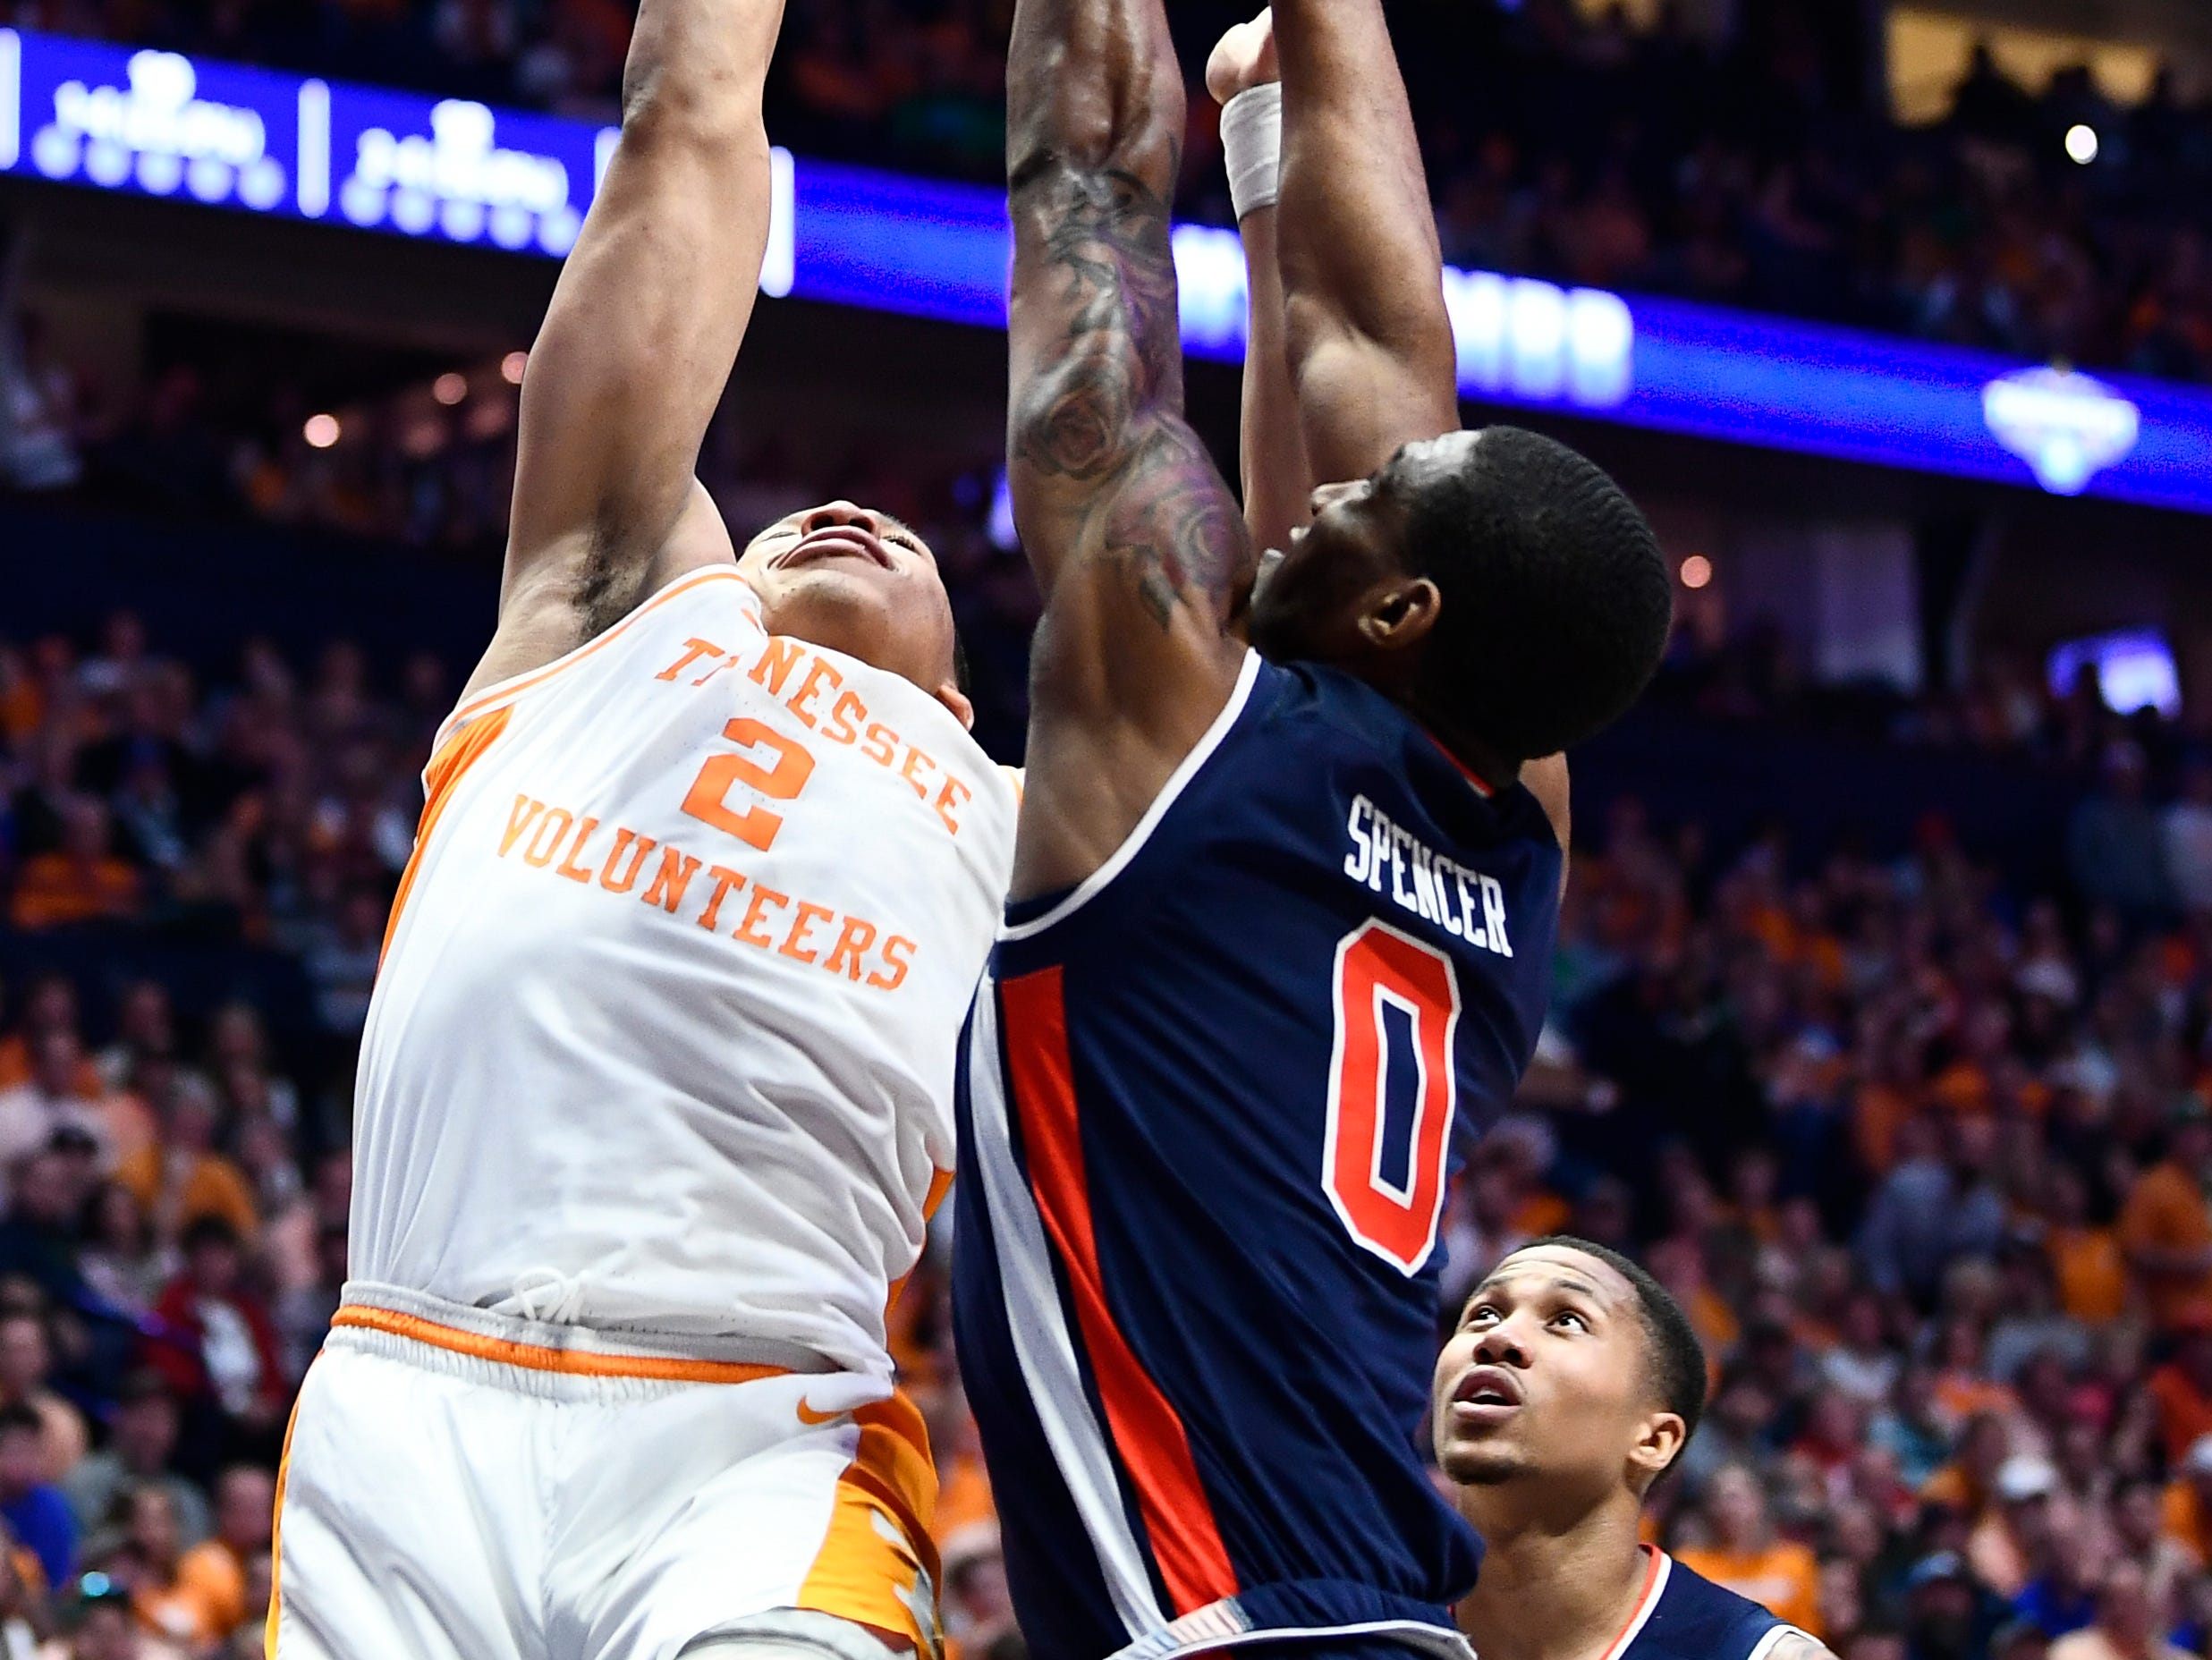 Tennessee forward Grant Williams (2) attempts a shot while defended by Auburn forward Horace Spencer (0) during the first half of the SEC Men's Basketball Tournament championship game at Bridgestone Arena in Nashville, Tenn., Sunday, March 17, 2019.